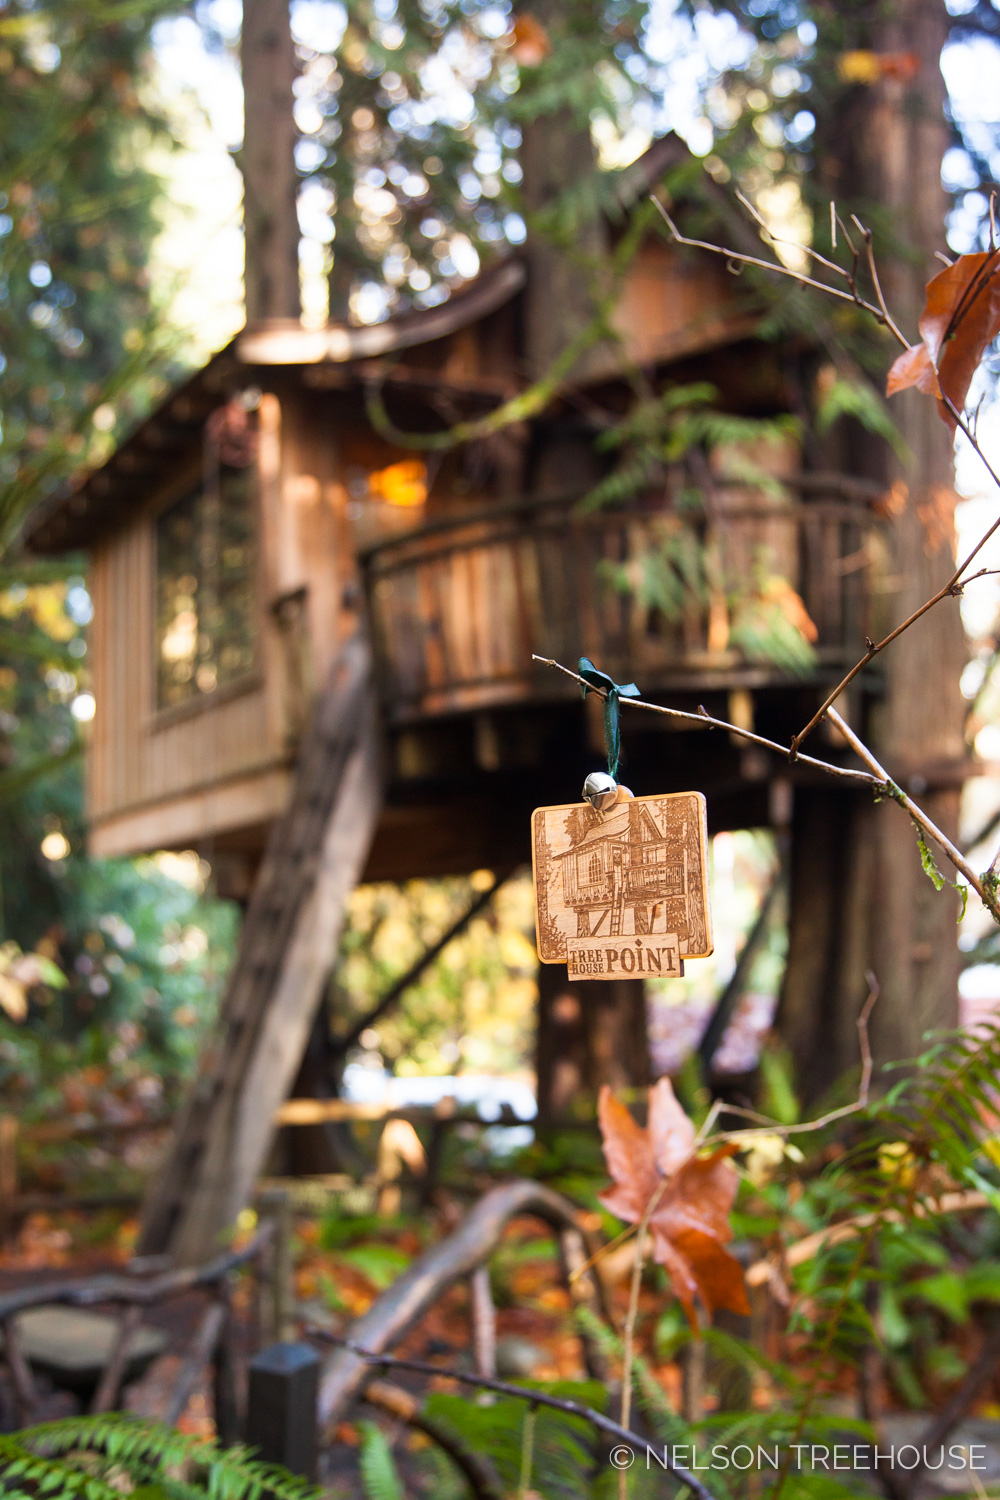 Upper Pond Treehouse Point Ornament